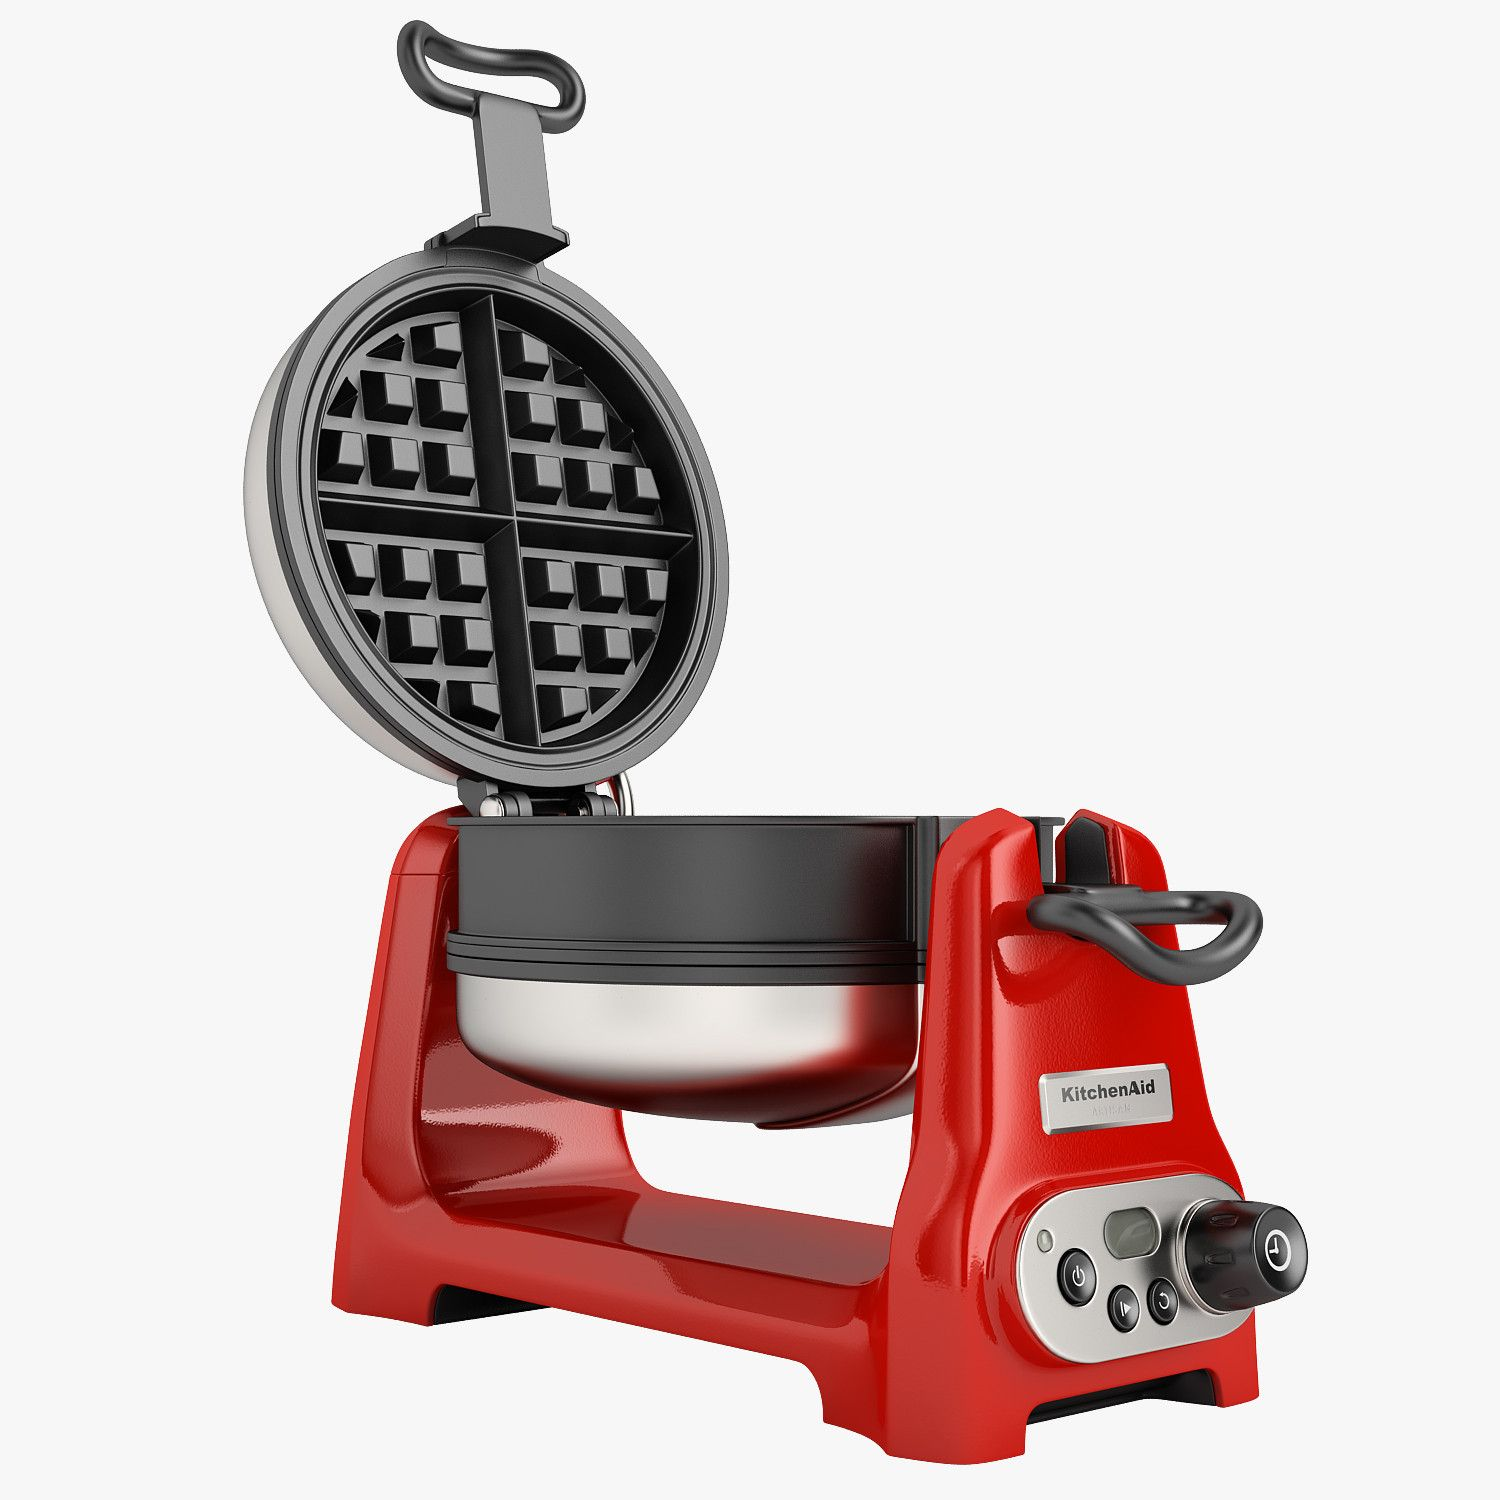 kitchenaid artisan waffle iron 02 model available on turbo squid the worlds leading provider of digital models for visualization films television - Kitchen Aid Waffle Makers